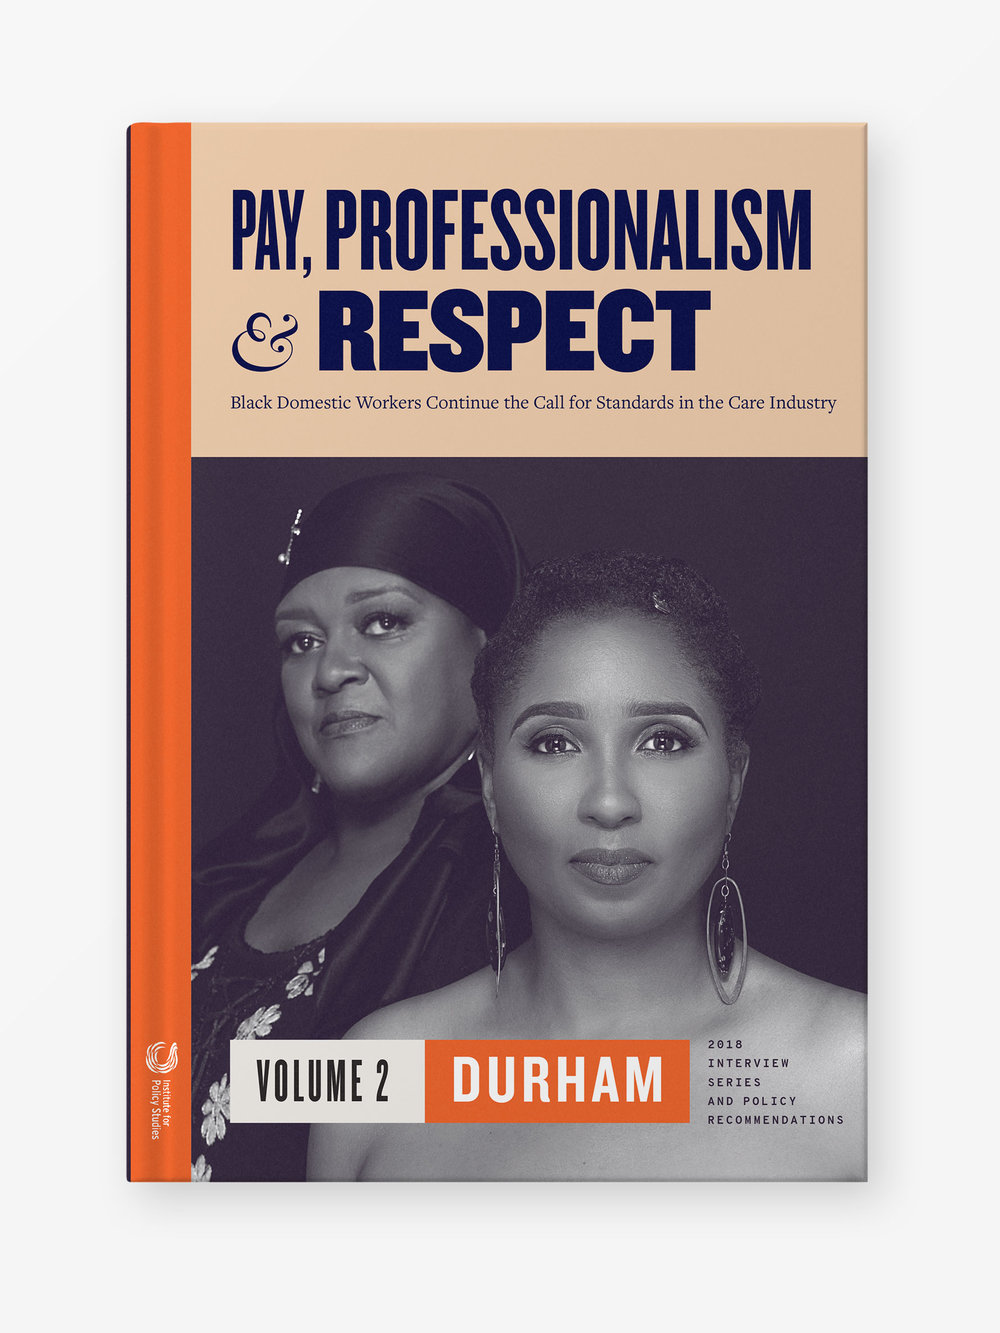 Pay, Professionalism & Respect, Volume 2: Durham